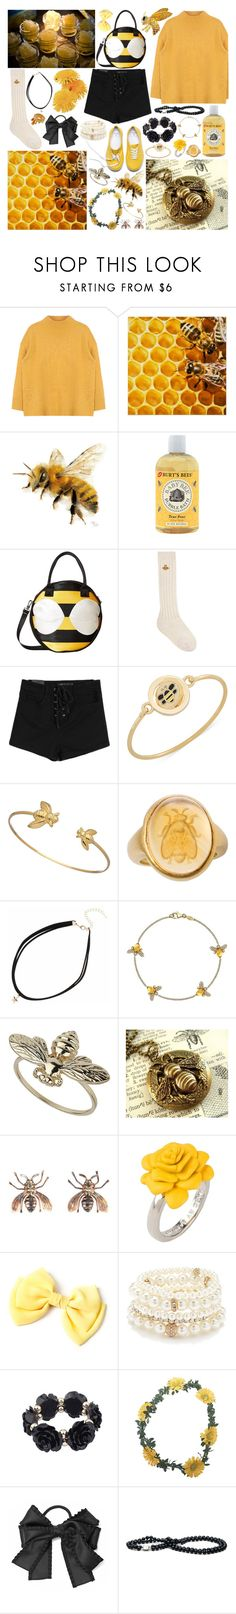 """43"" by laughinglynx ❤ liked on Polyvore featuring Harveys, Gucci, Carolee, Emily Elizabeth Jewelry, Topshop, Vernissage, Marc by Marc Jacobs, claire's, Forever 21 and Wet Seal"